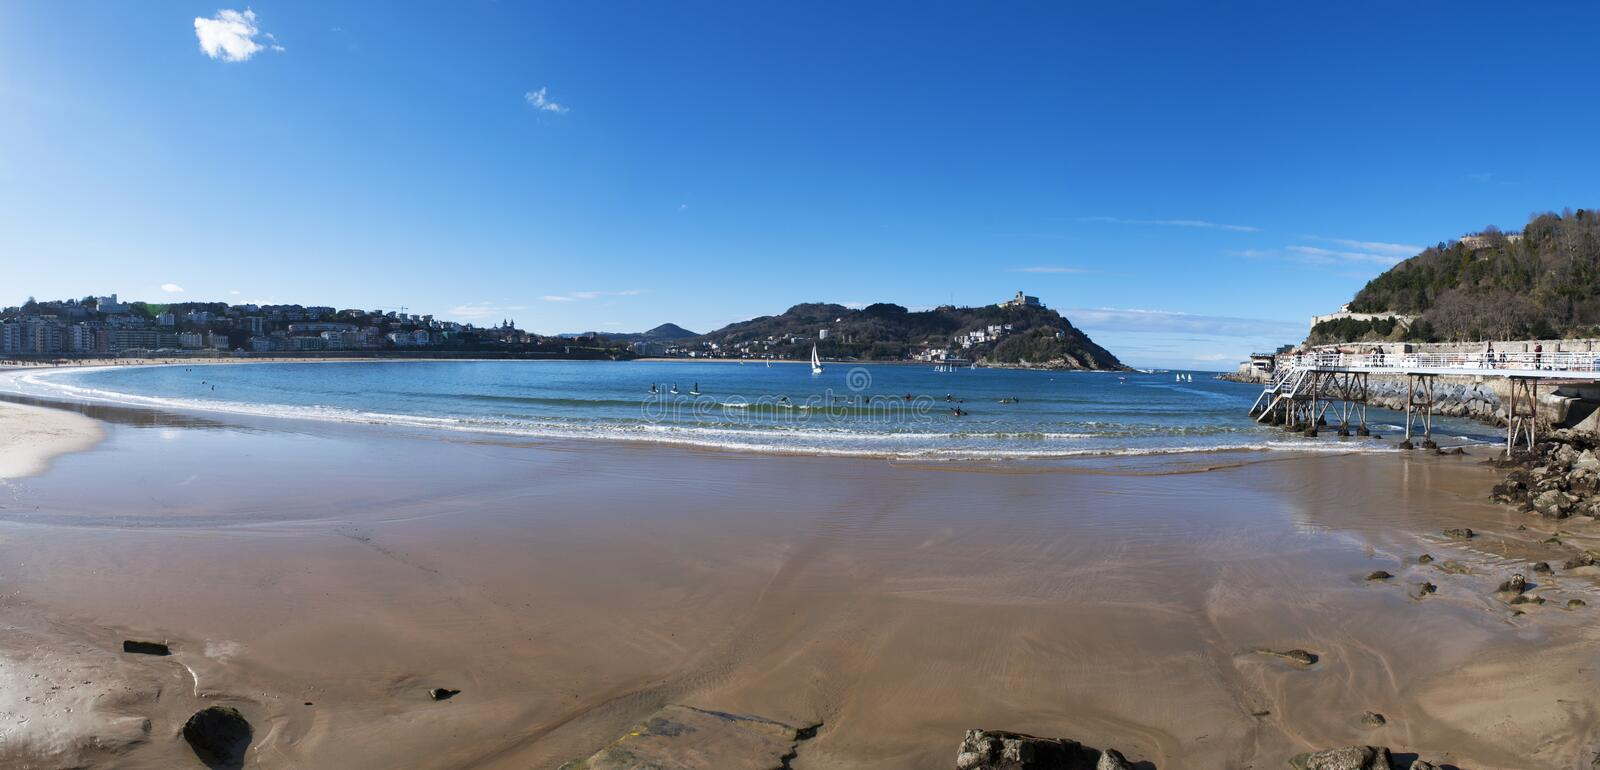 Donostia, San Sebastian, Golfe de Gascogne, pays Basque, Espagne, l'Europe photo stock